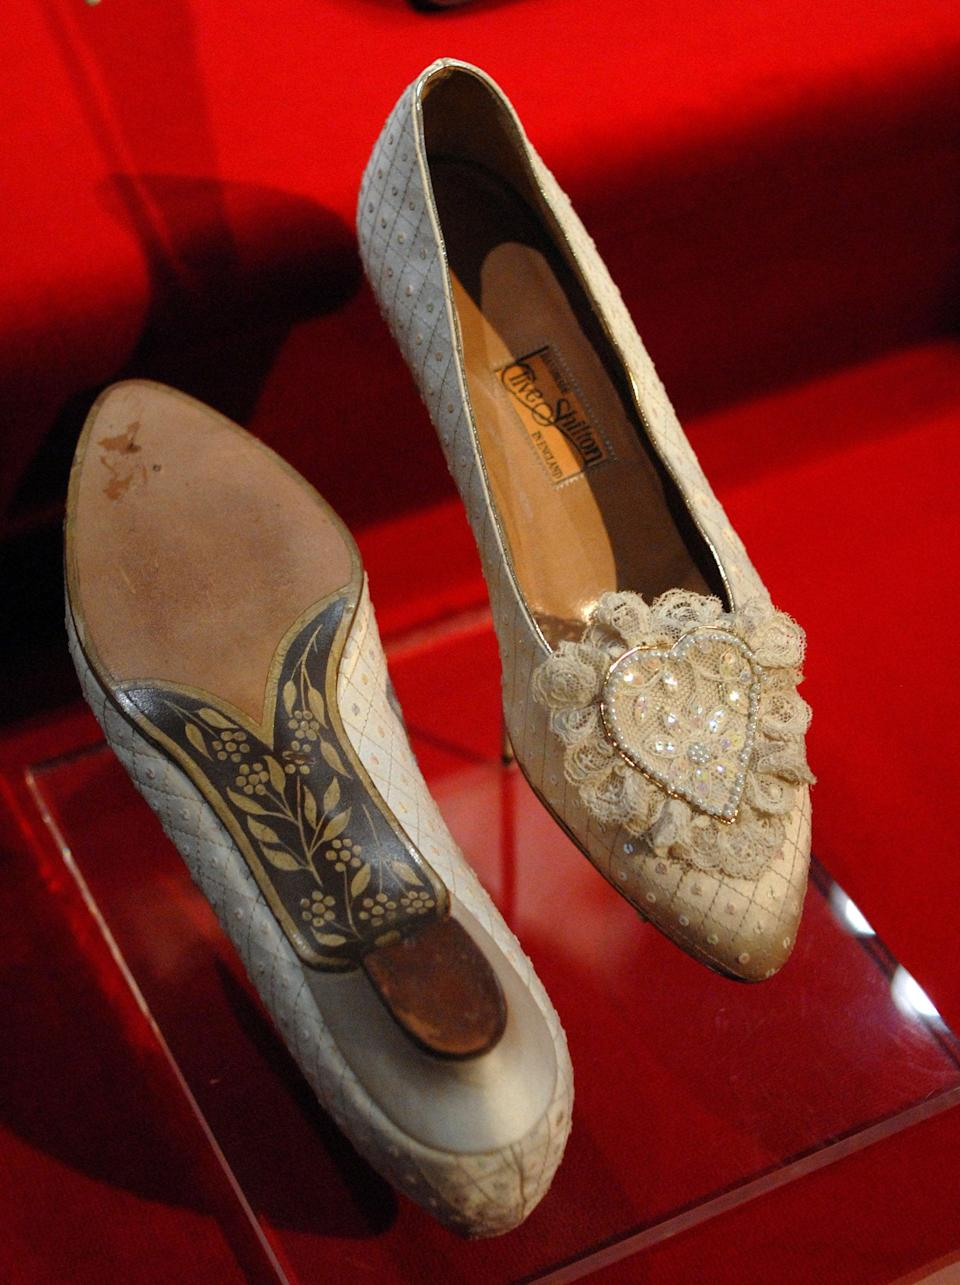 """Princess Diana's wedding slippers are displayed at a preview of the traveling """"Diana: A Celebration"""" exhibit at the National Constitution Center in Philadelphia, Pennsylvania (Getty Images)"""